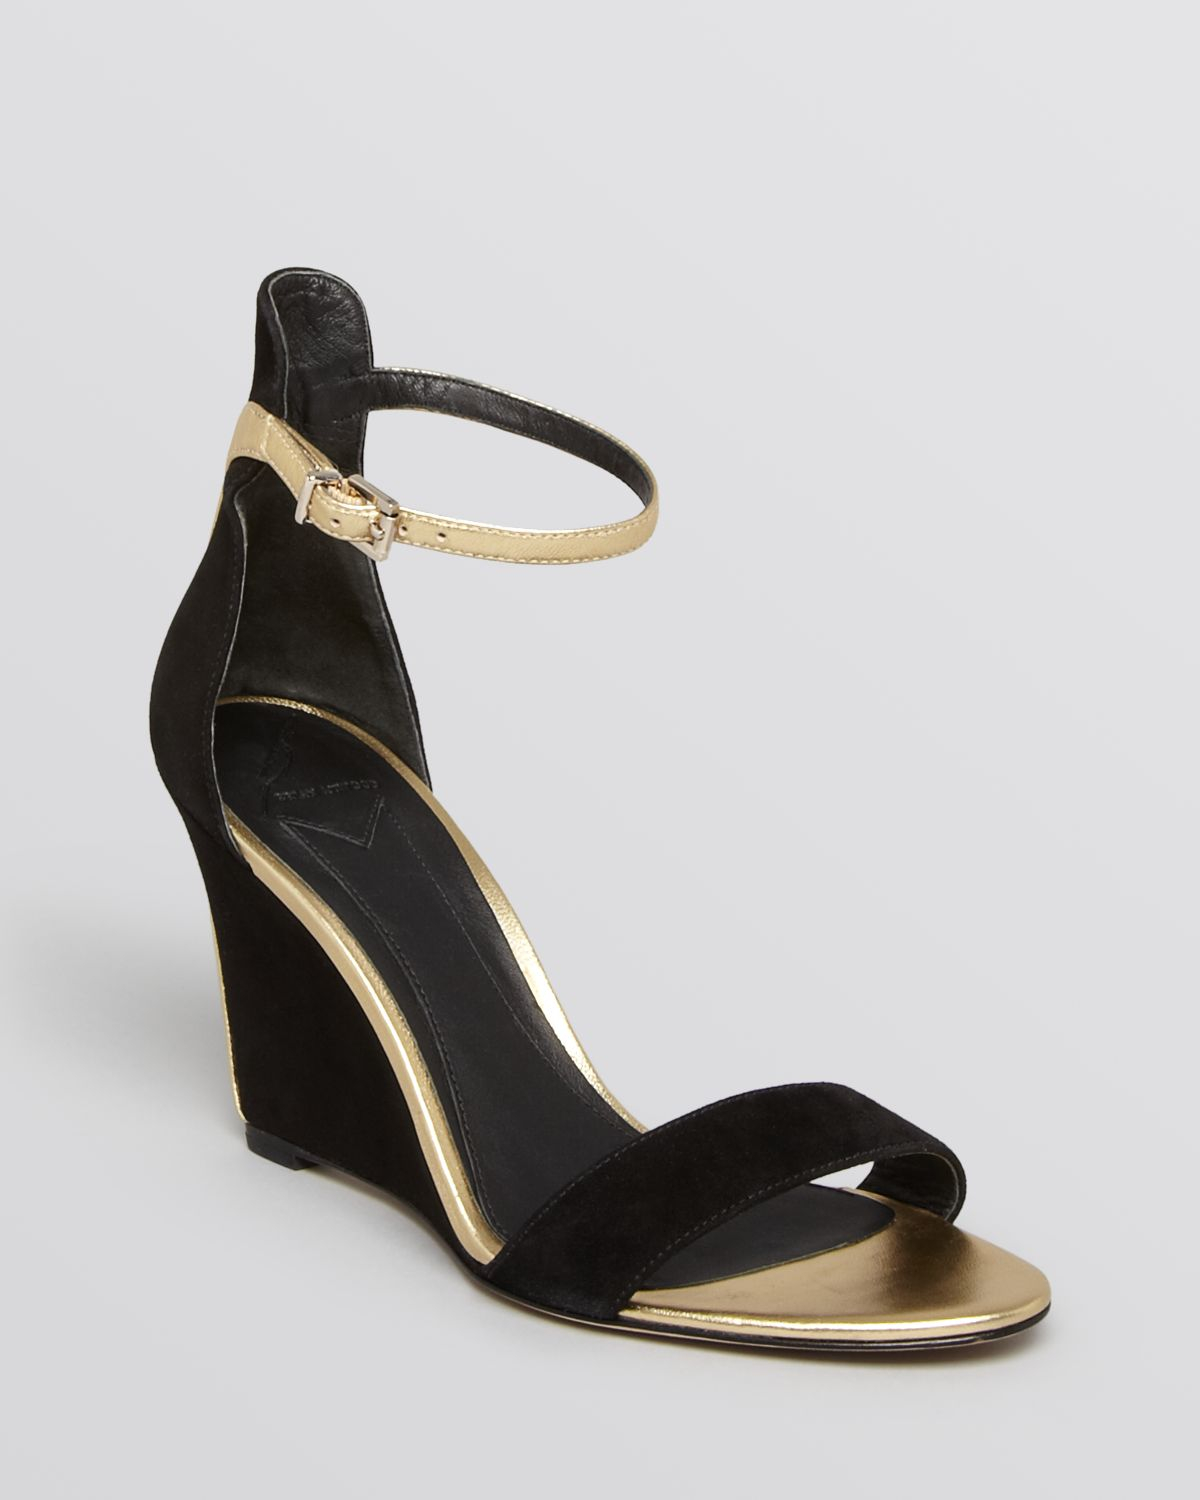 a20c1e3af67 B Brian Atwood Metallic Wedge Sandals Roberta